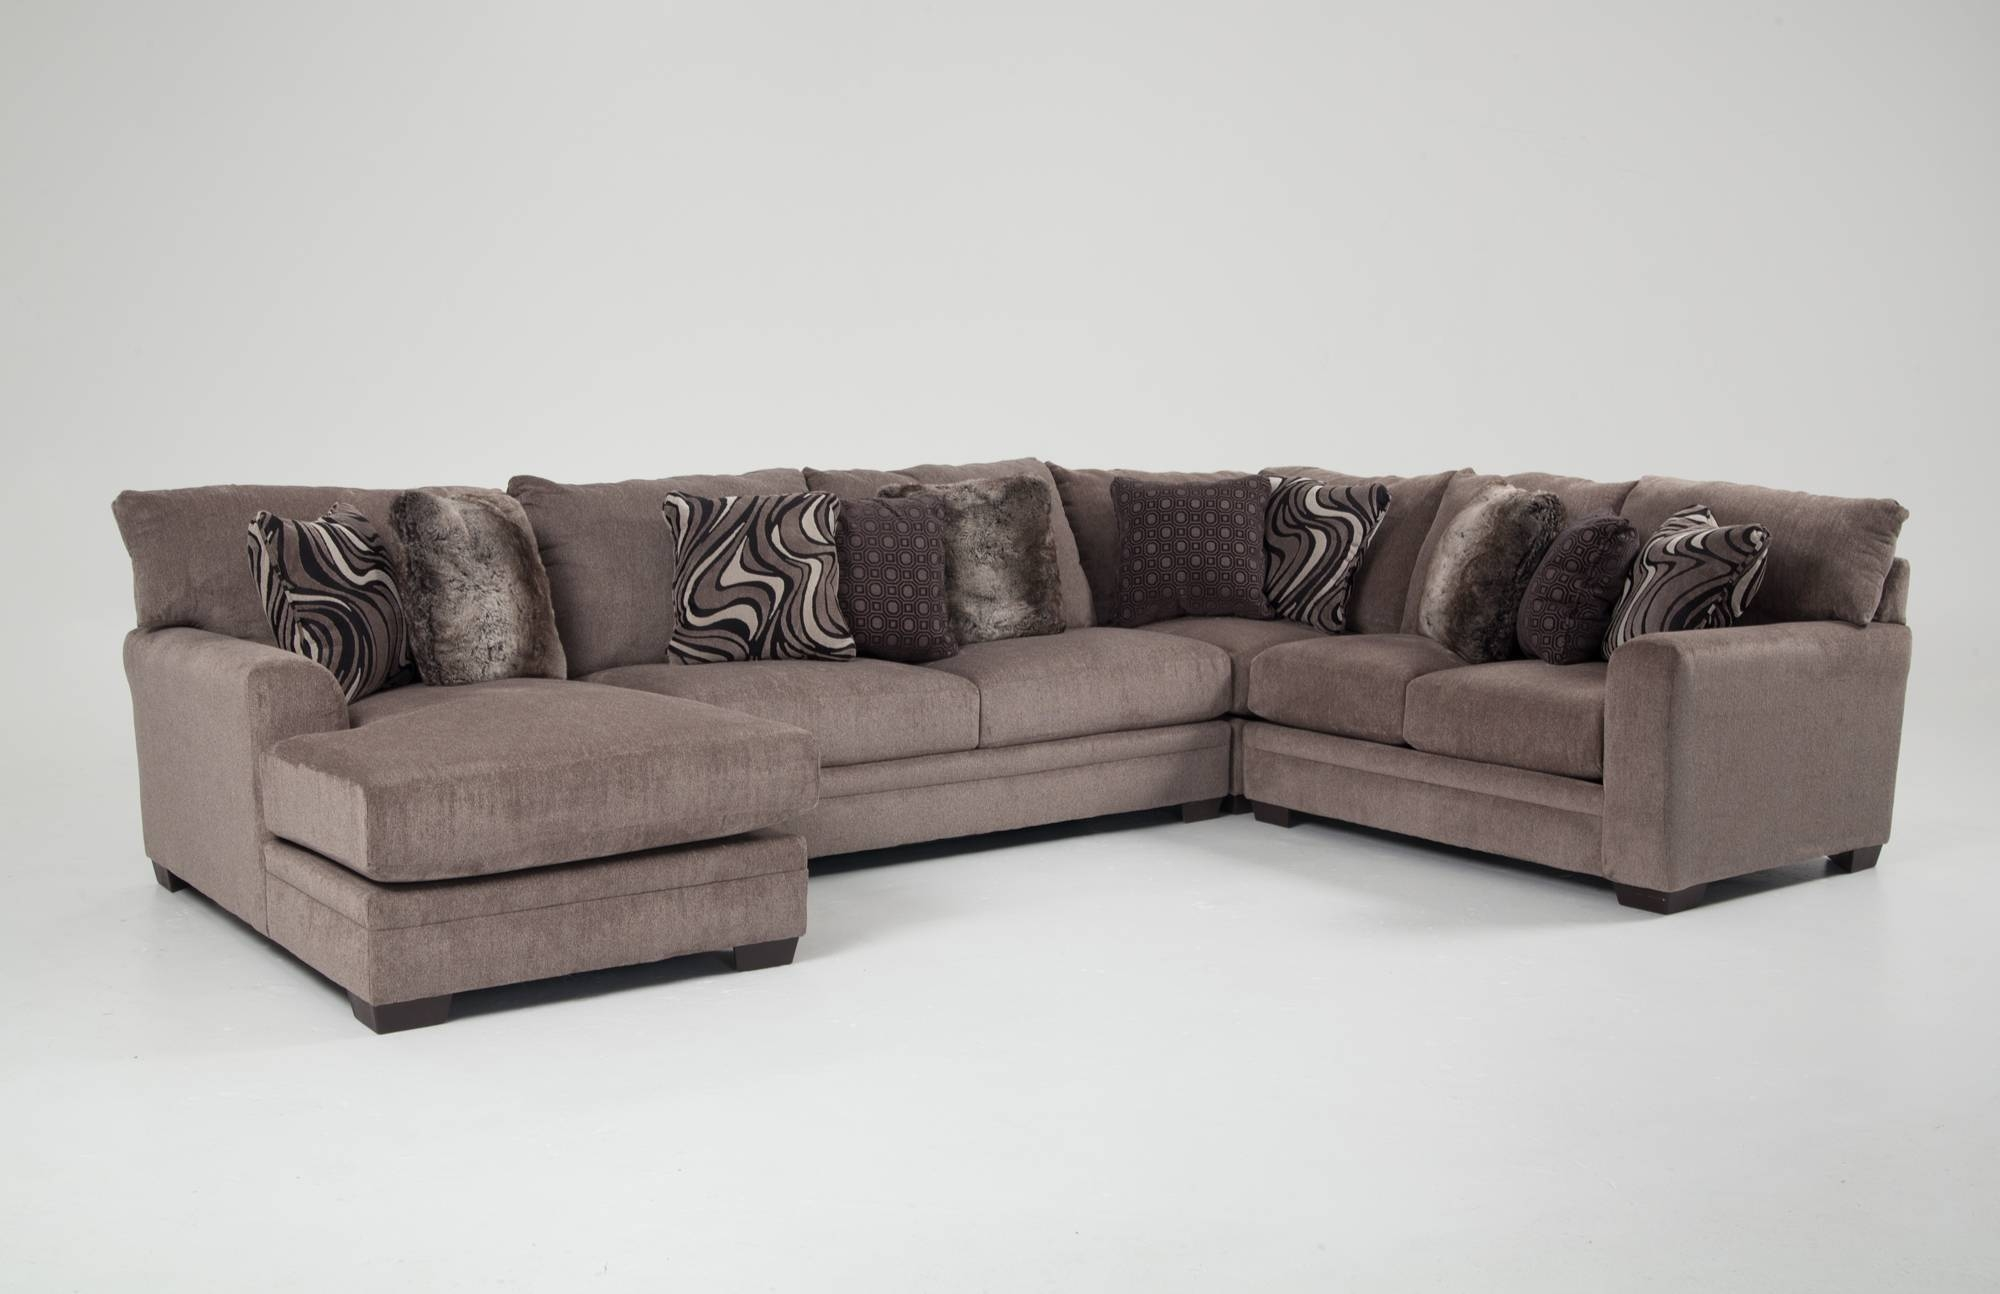 Luxe 4 Piece Right Arm Facing Sectional With Chaise | Bob's with Luxe Sofas (Image 9 of 15)